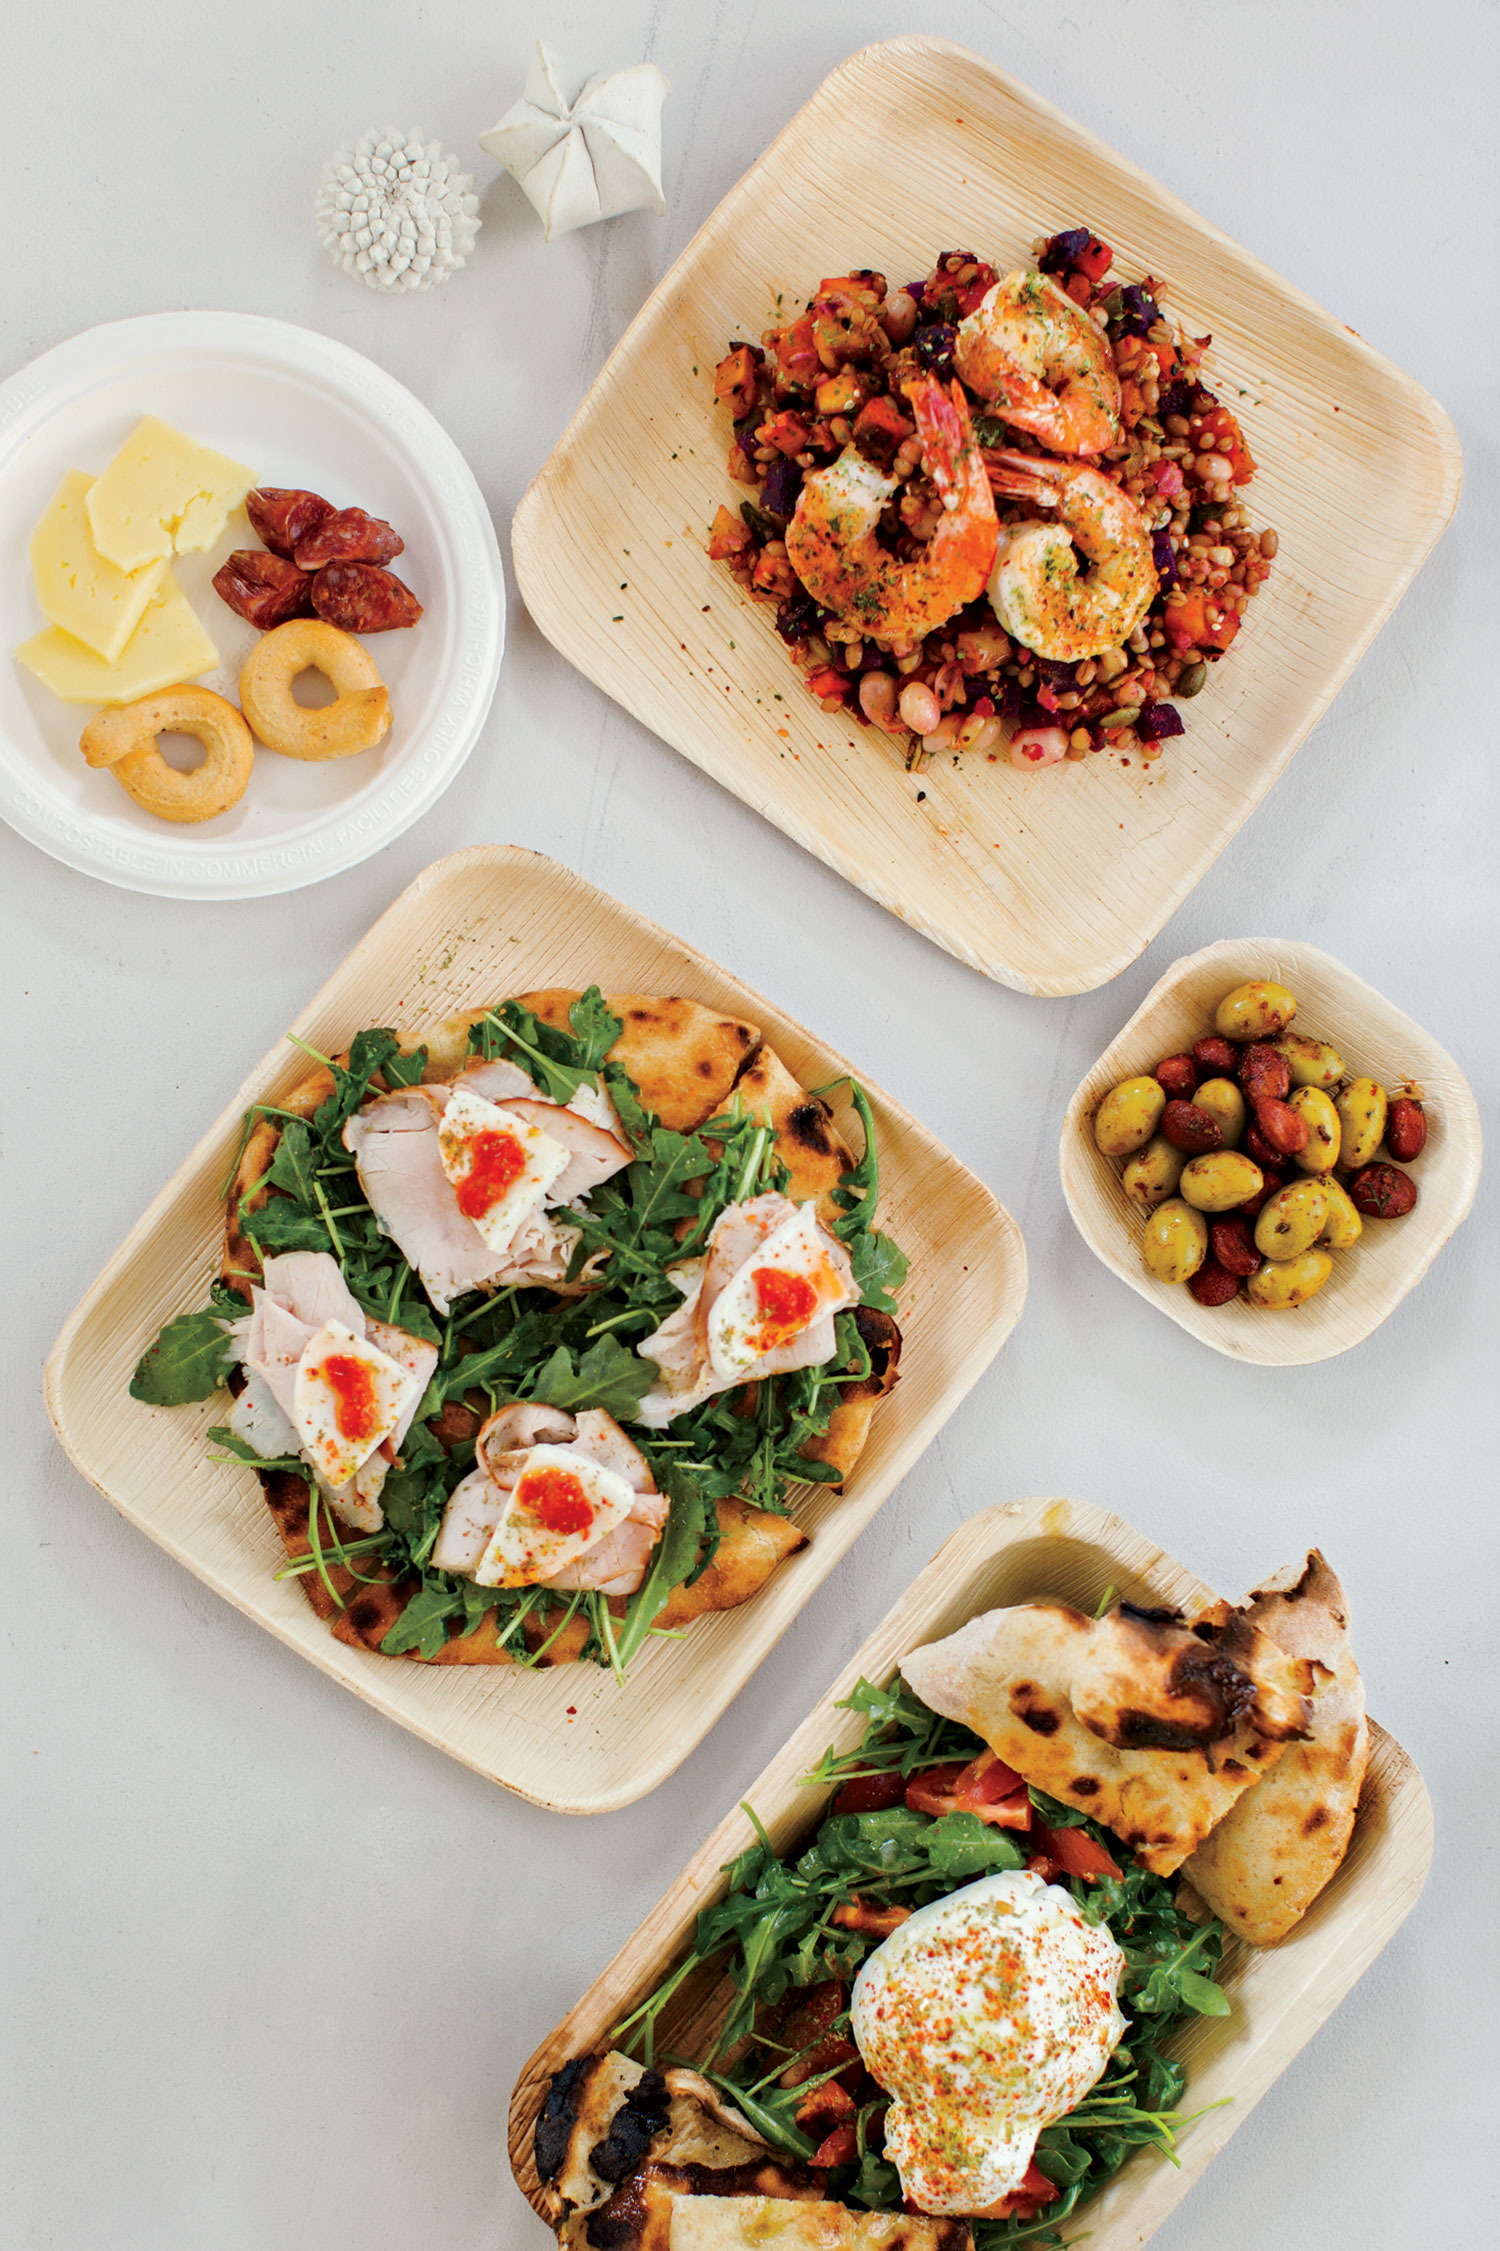 Mahón cheese and salametto; Navarro bowl with wild Guaymas shrimp; olives and spicy almonds; salad greens; schiacciata; Photo by Blake Bonillas